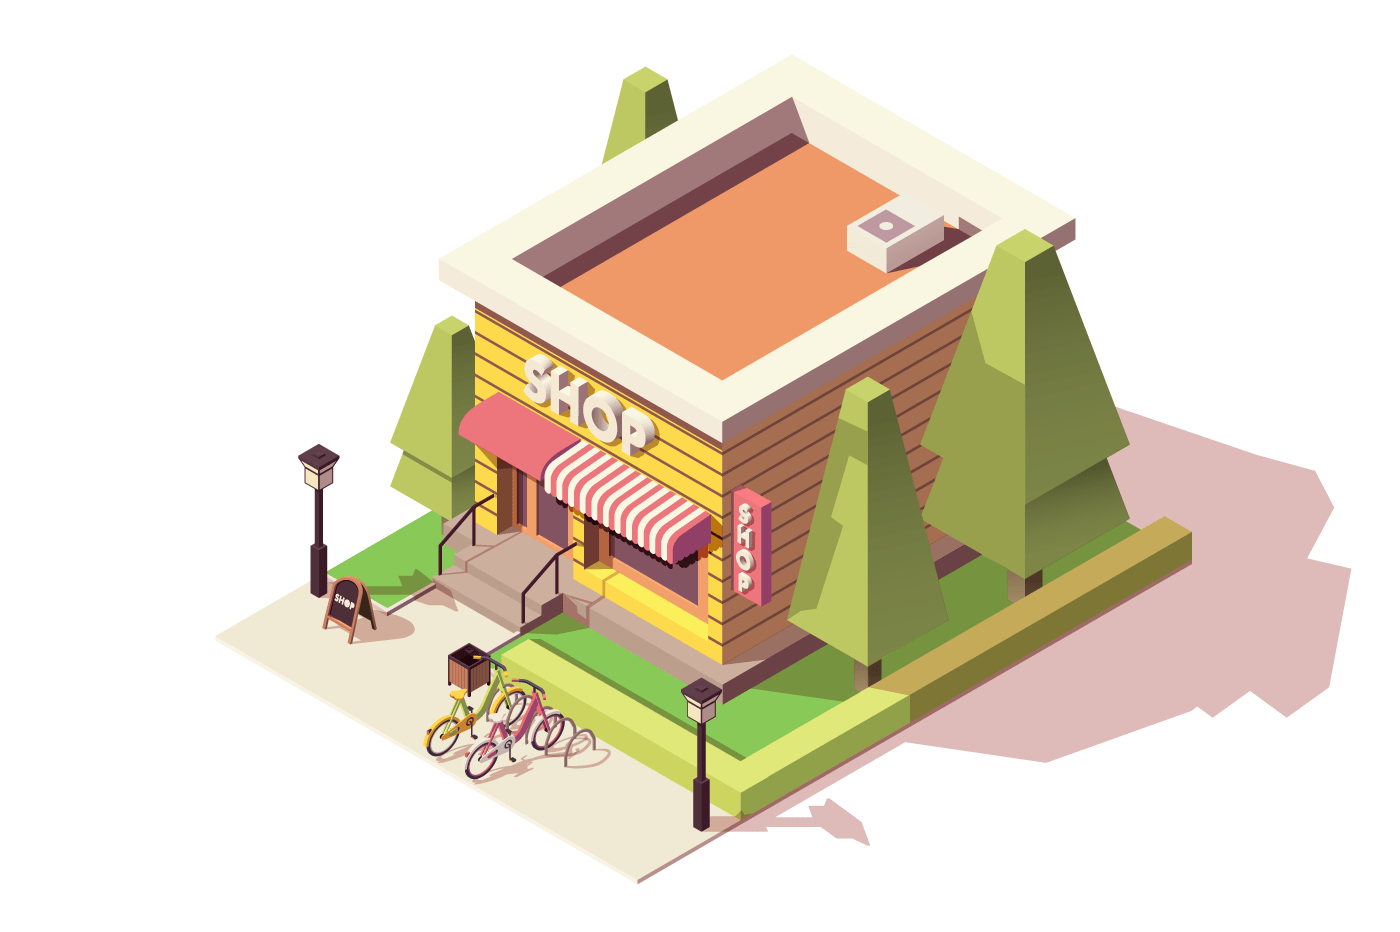 Small shop with bicycle parking and hedge.